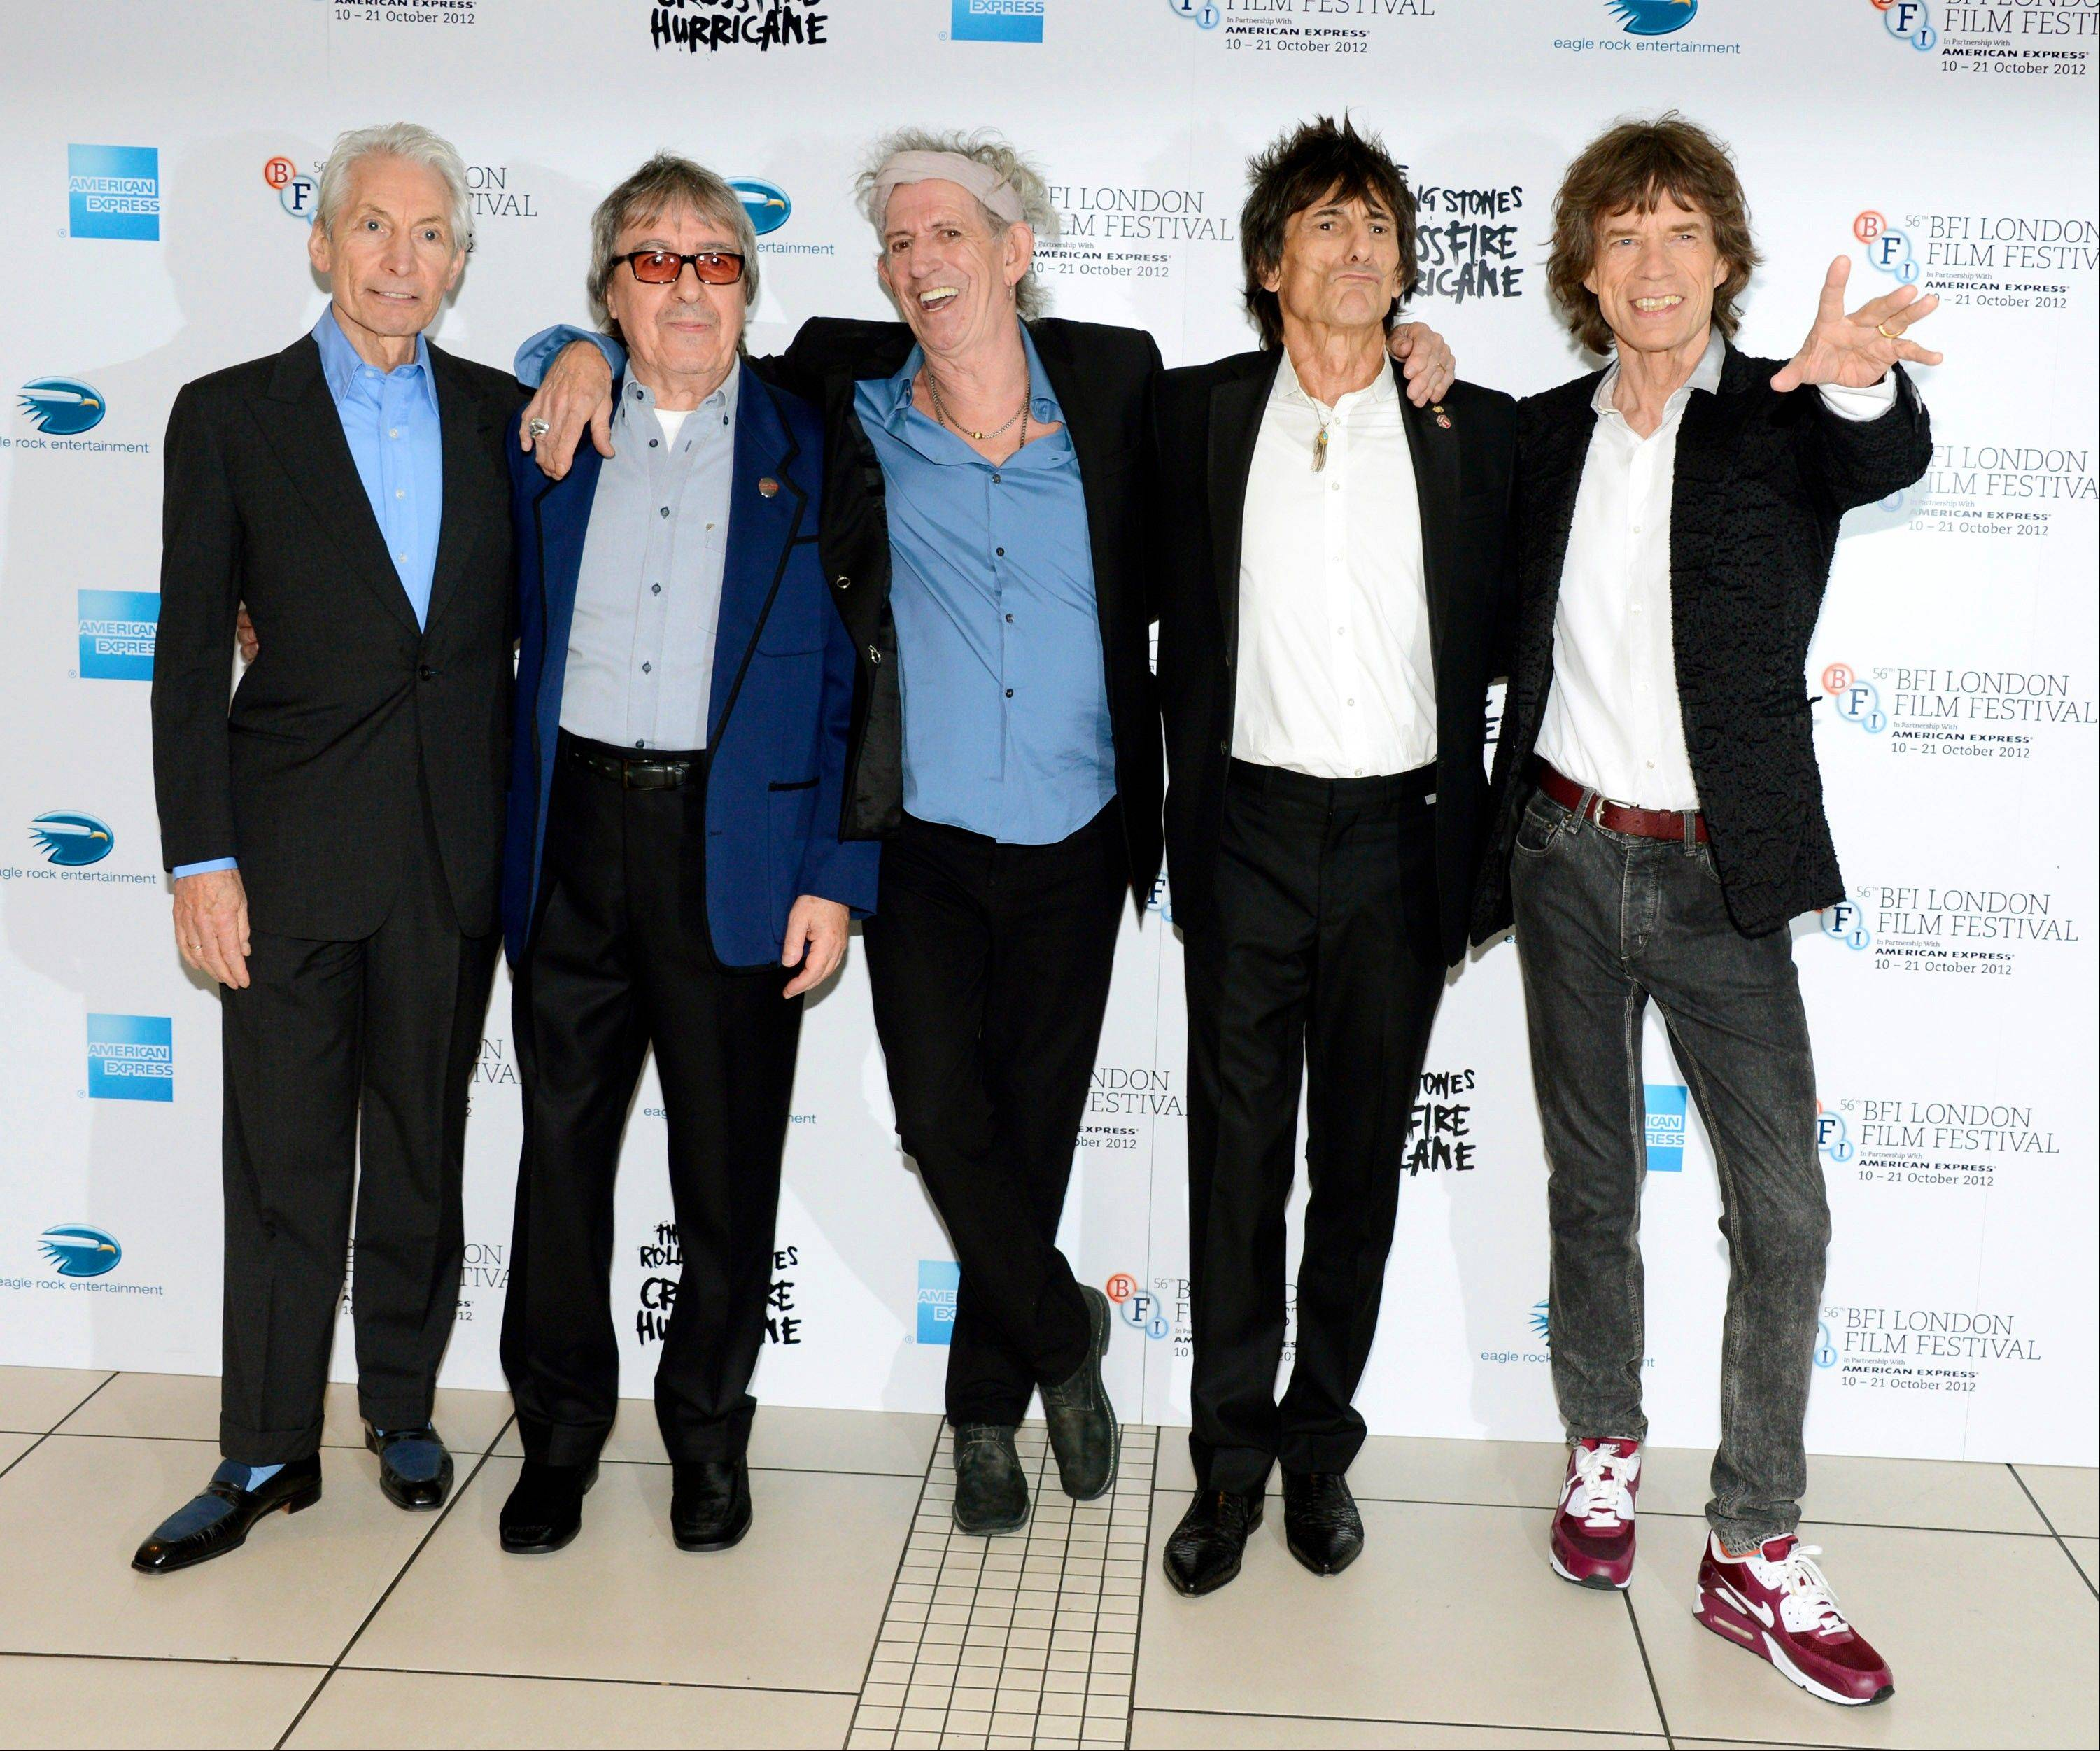 Charlie Watts, left, Bill Wyman, Keith Richards, Ronnie Wood and Mick Jagger of The Rolling Stones, who are set for five concerts in London and the New York area over the next month, released another hits compilation with two new songs on Tuesday, Nov. 13.